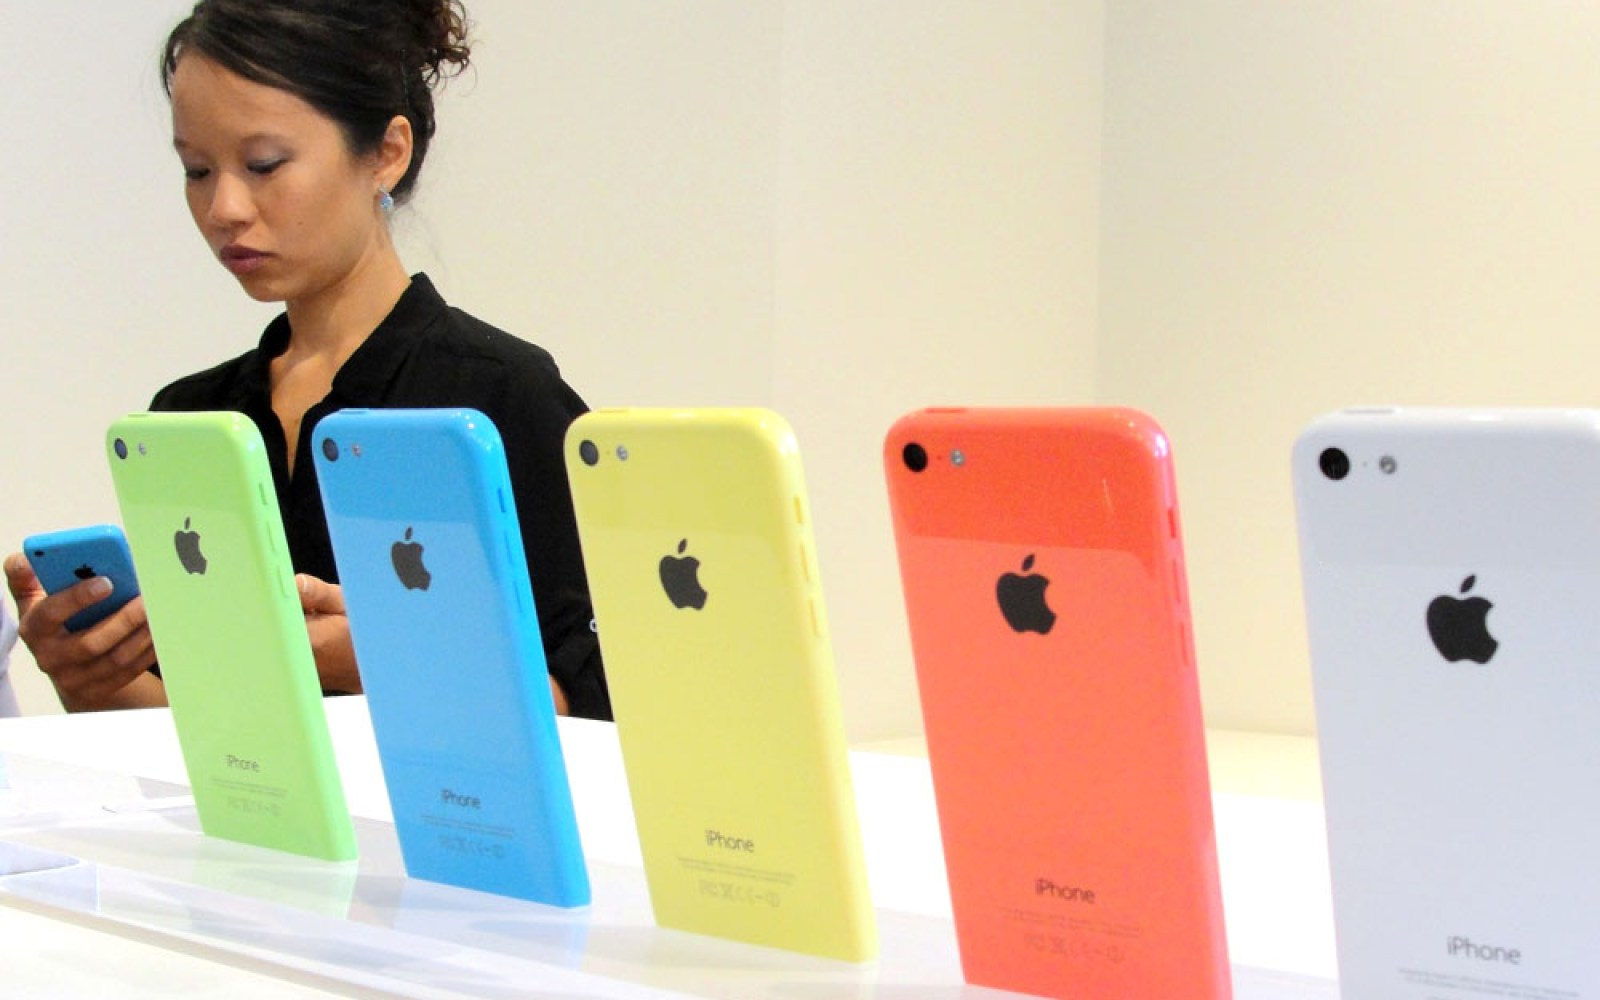 China Mobile iPhone launch could lead to subsidy wars, say analysts